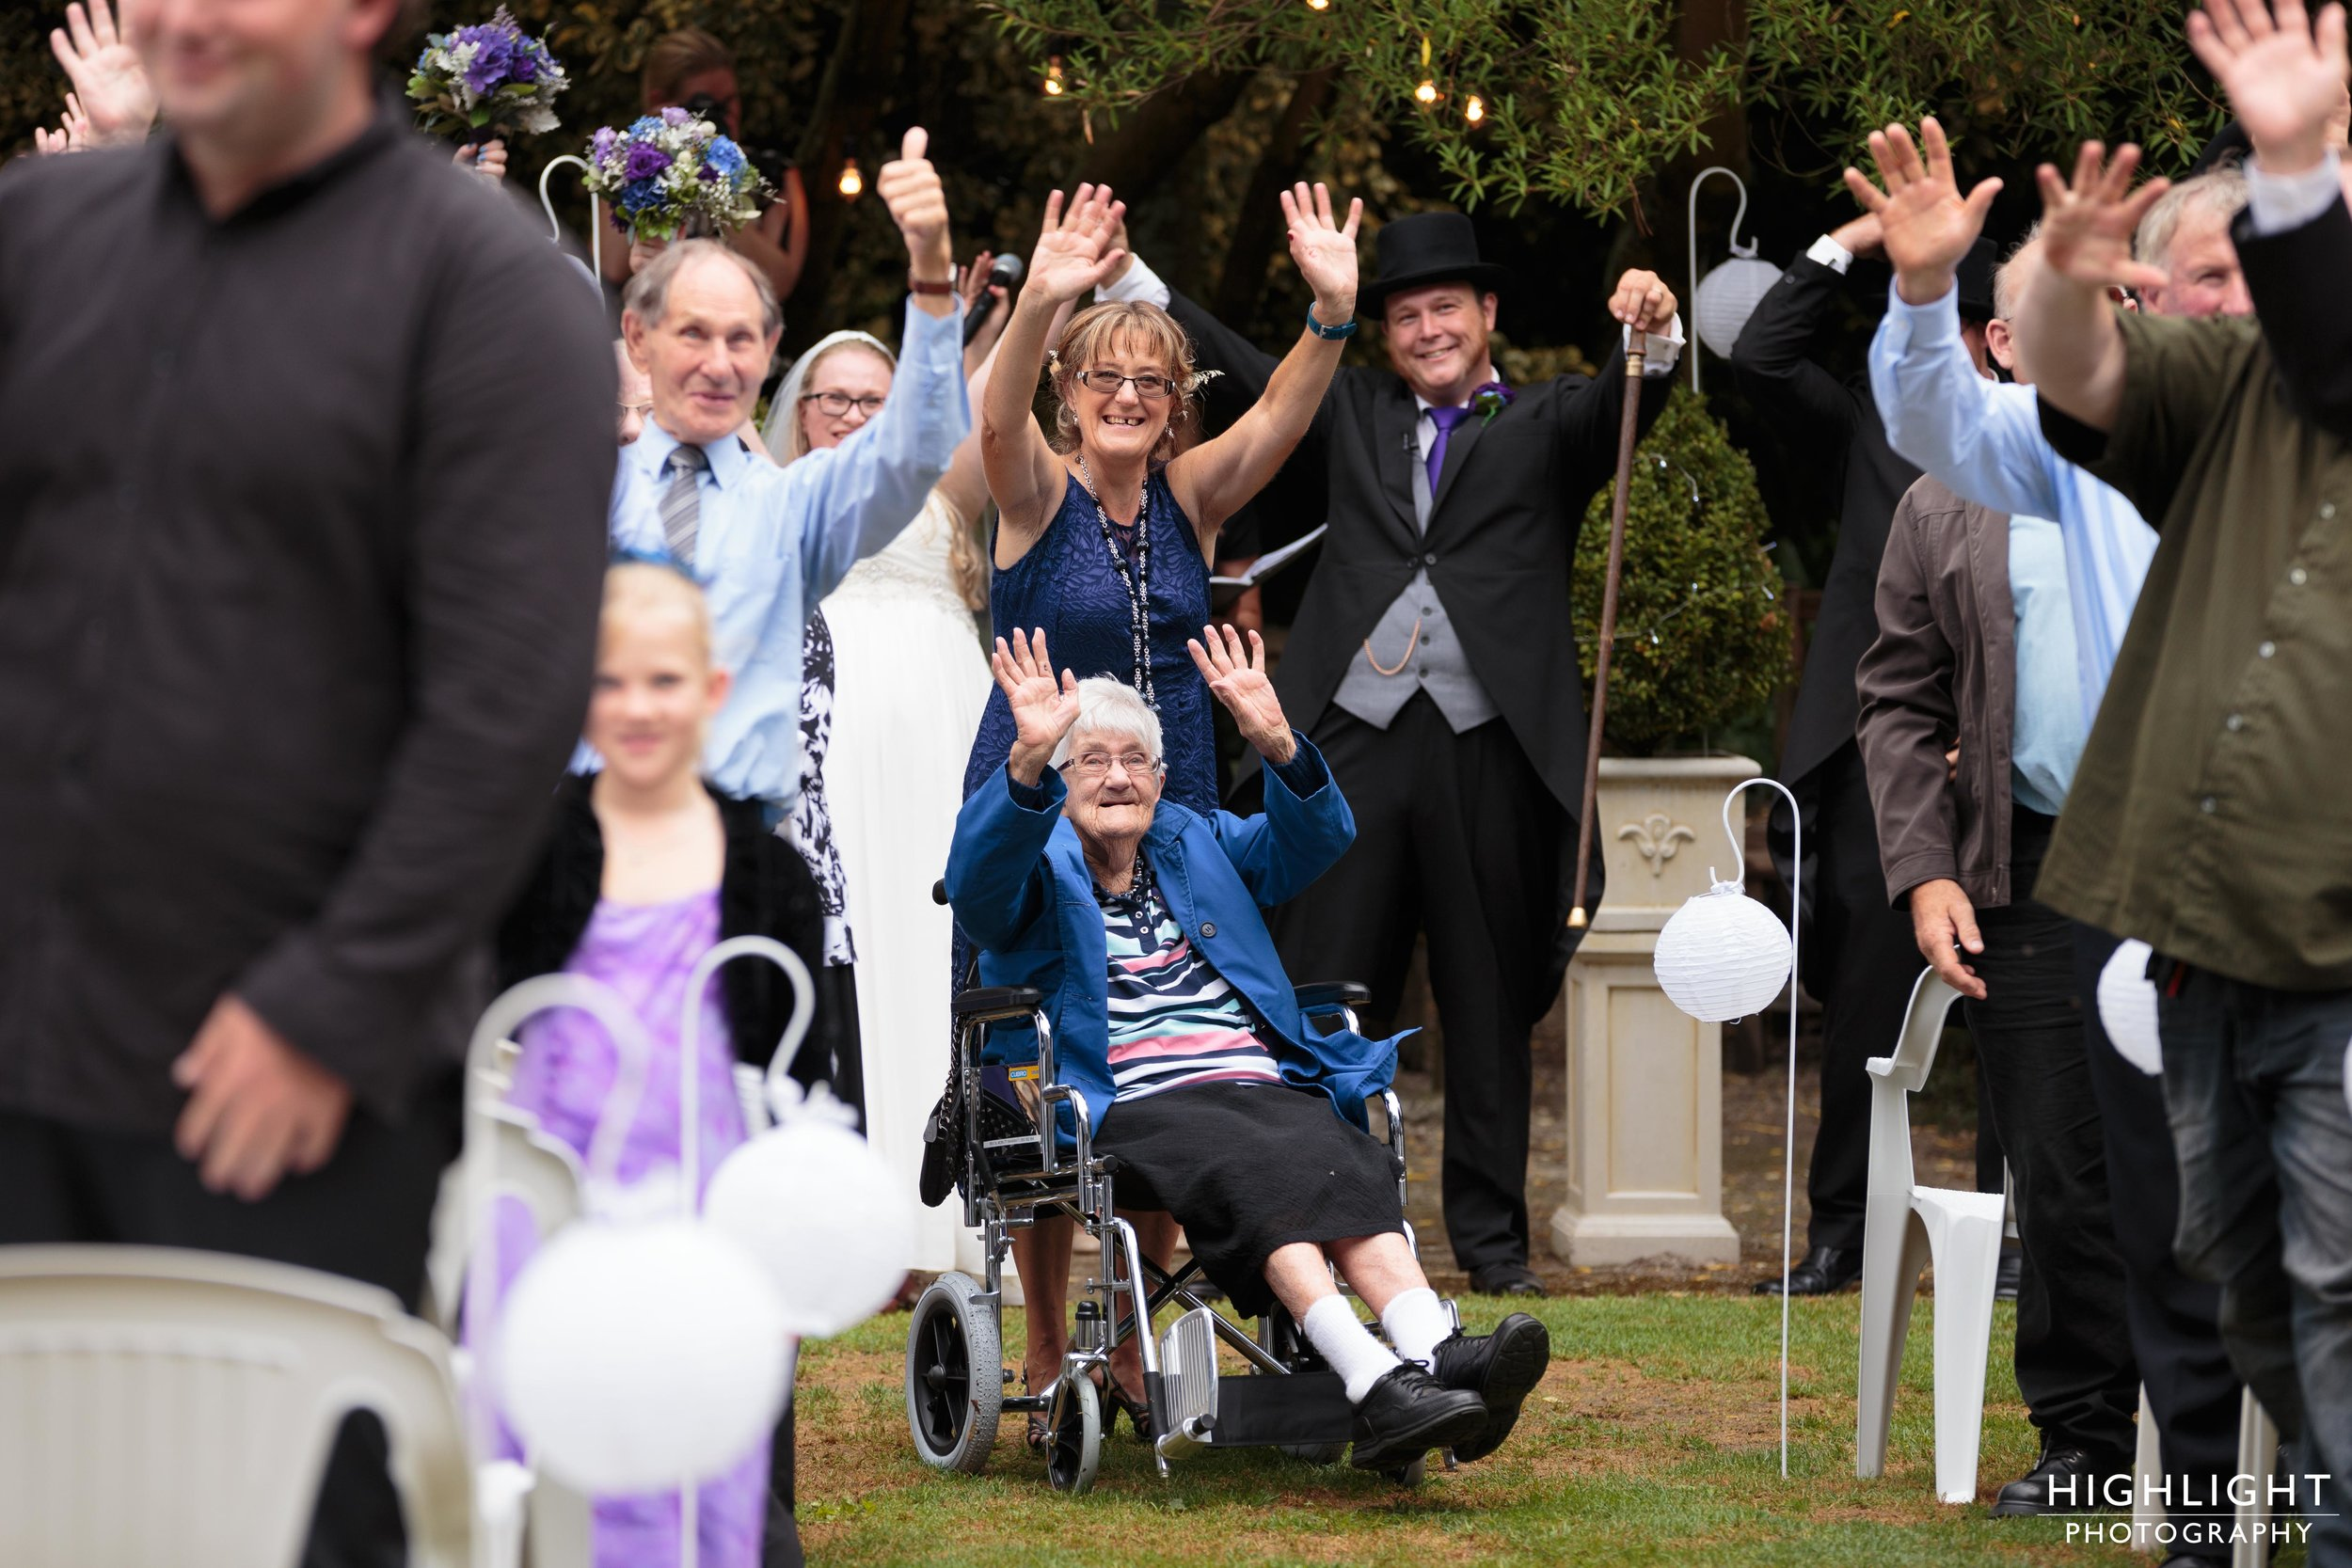 highlight-wedding-photography-new-zealand-palmerston-north-72.jpg